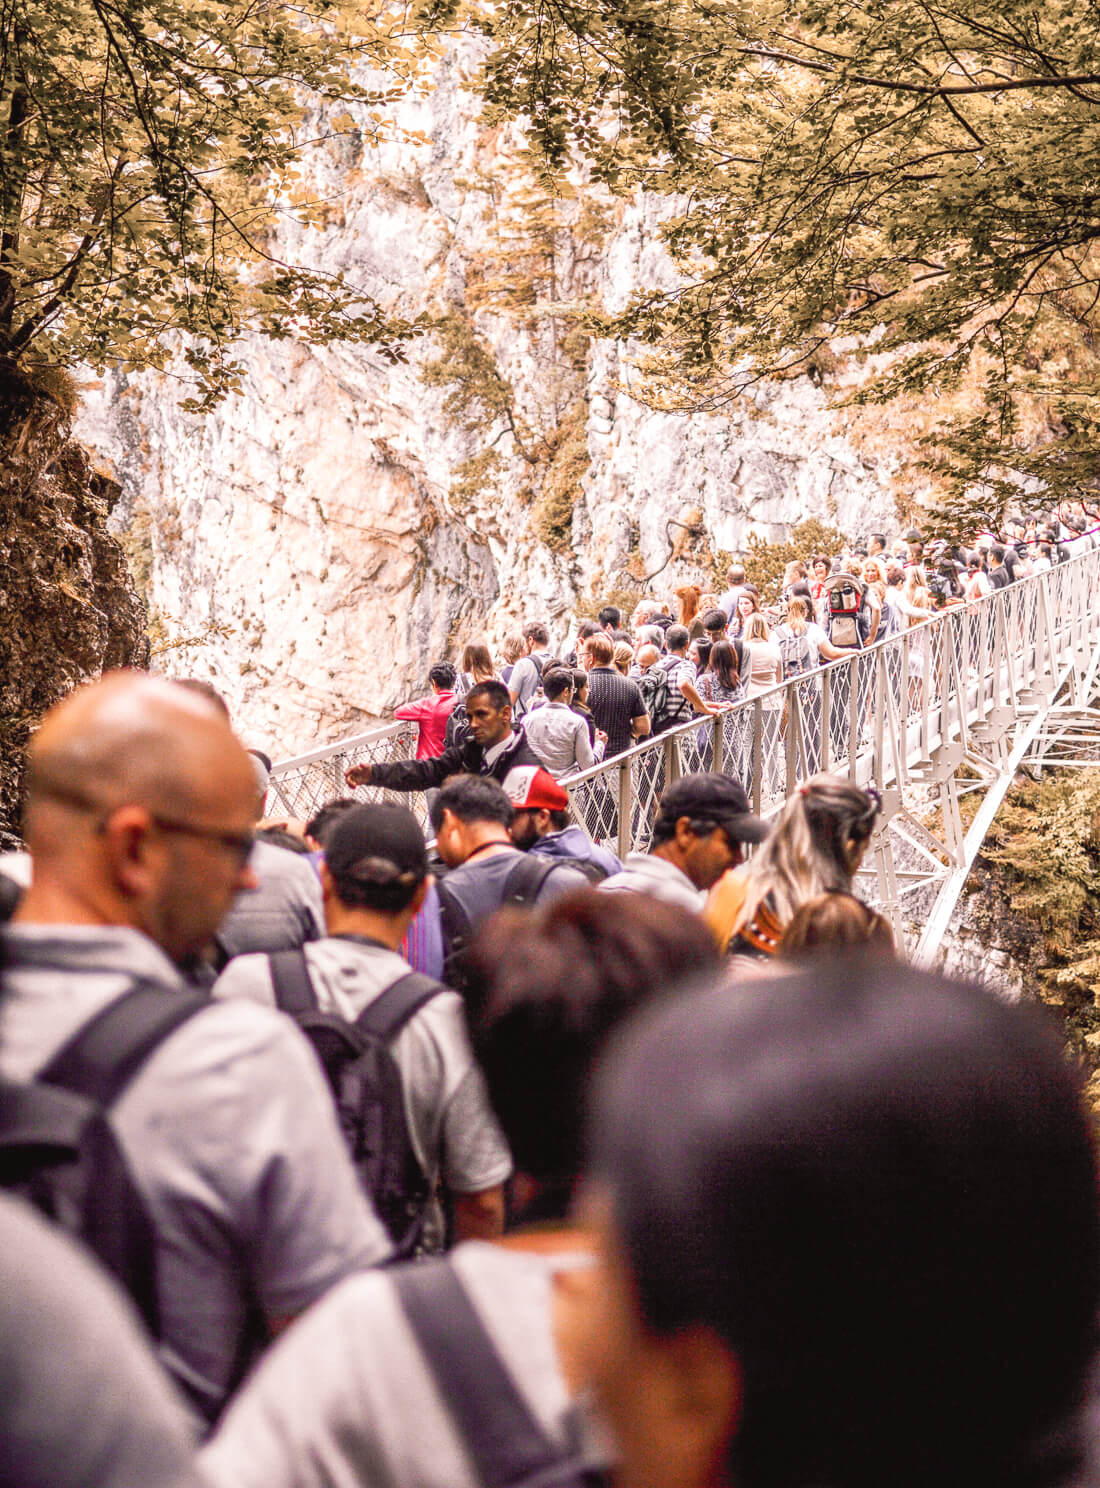 Huge crowd of tourists walking across a tiny bridge